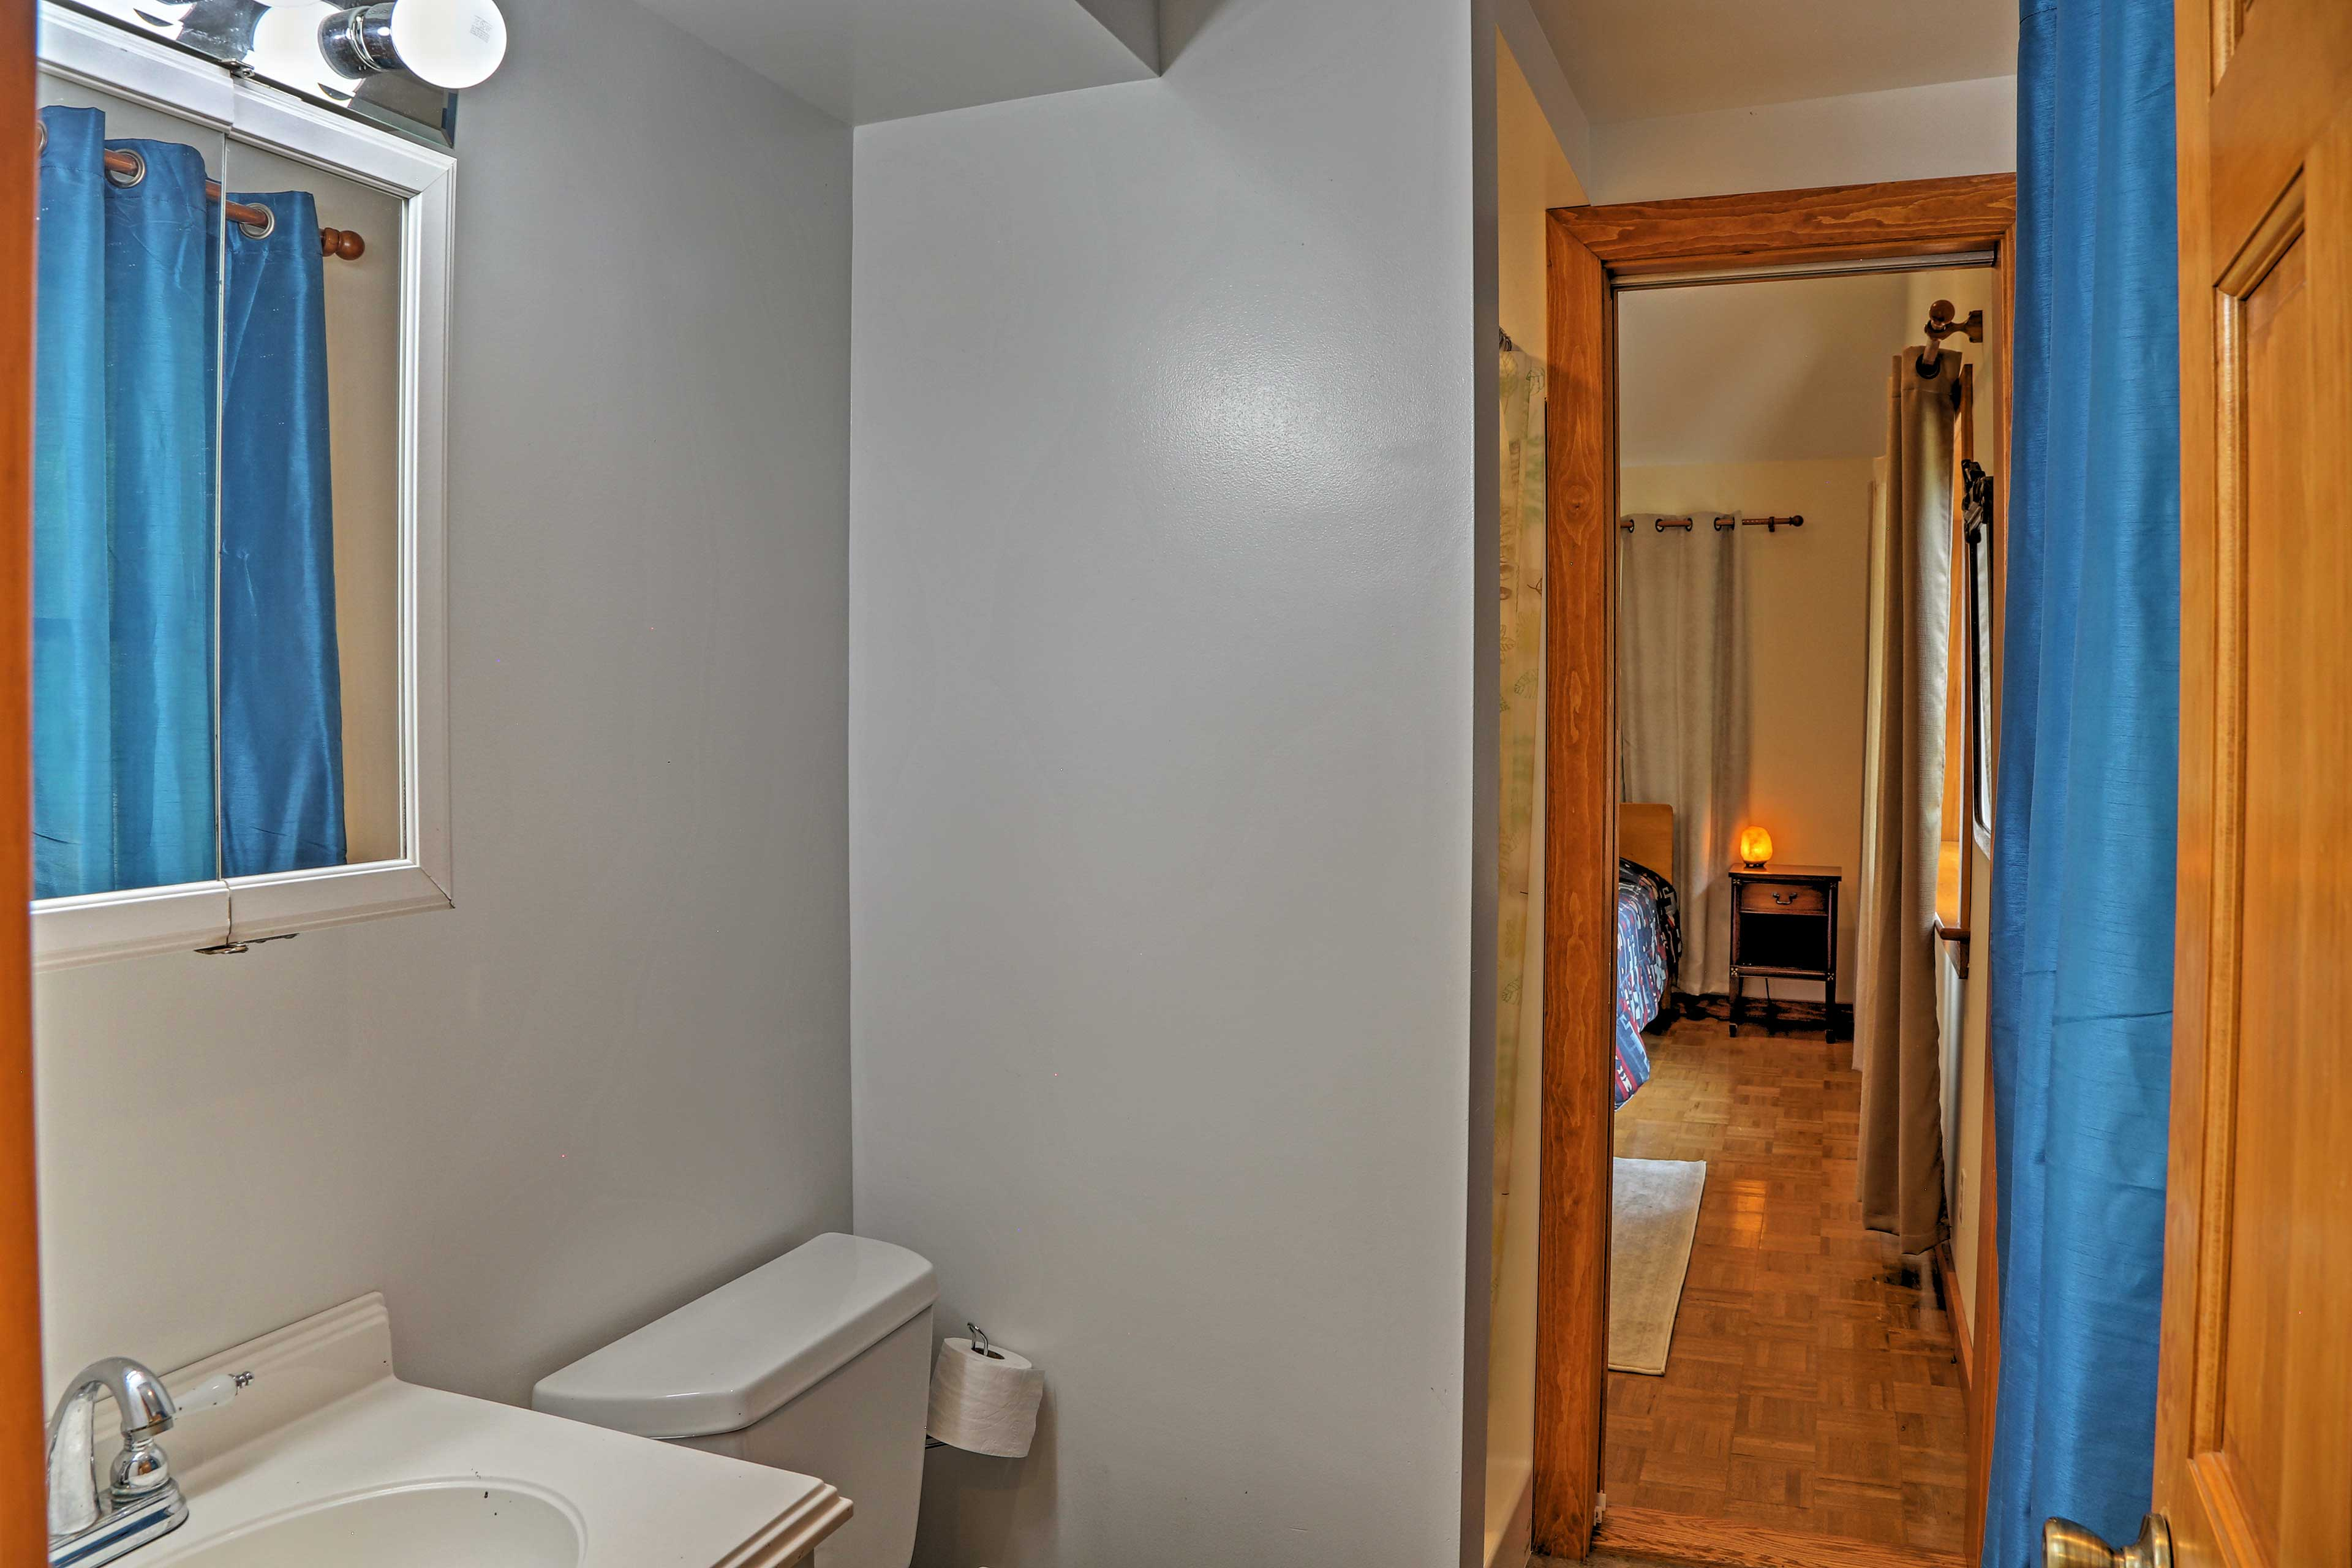 There are 3 full bathrooms throughout the home.